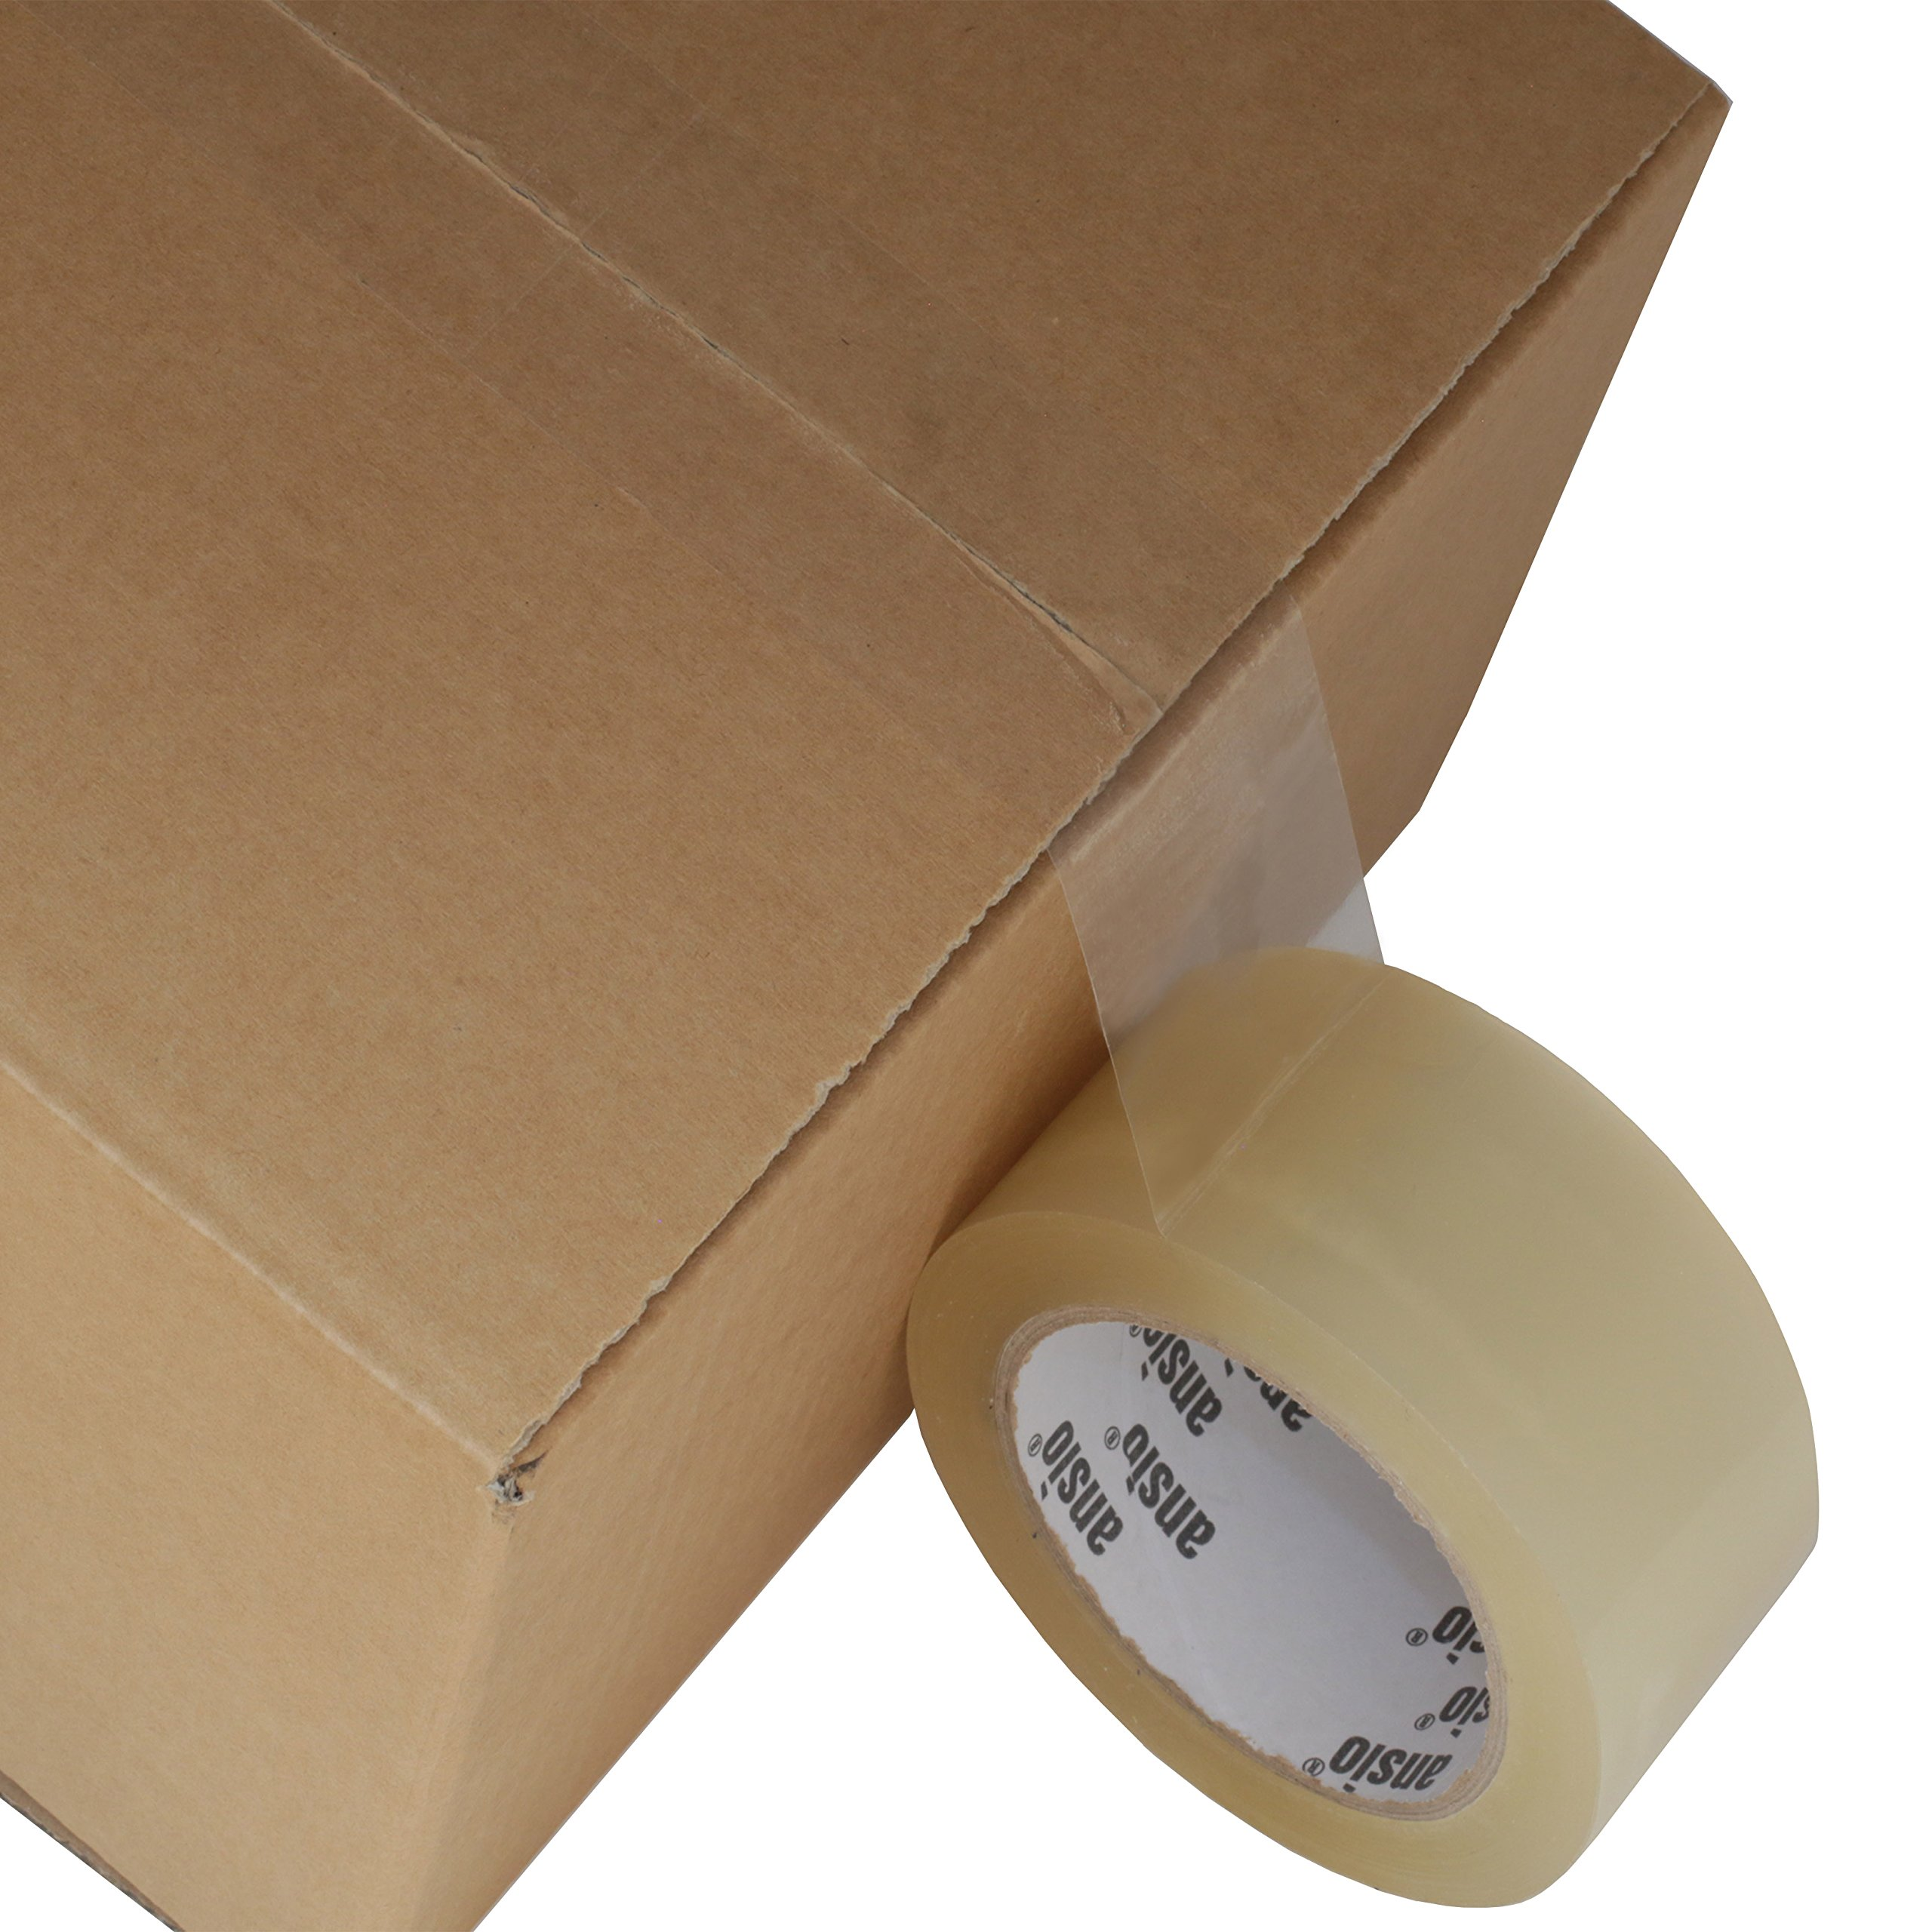 Packing Tape, Shipping Tape, Moving Supplies, Packing Supplies, Packaging Tape, Clear Packing Tape, Box Tape - 2 inches x 66 Yards (50mm x 60m) - 6 Roll Pack